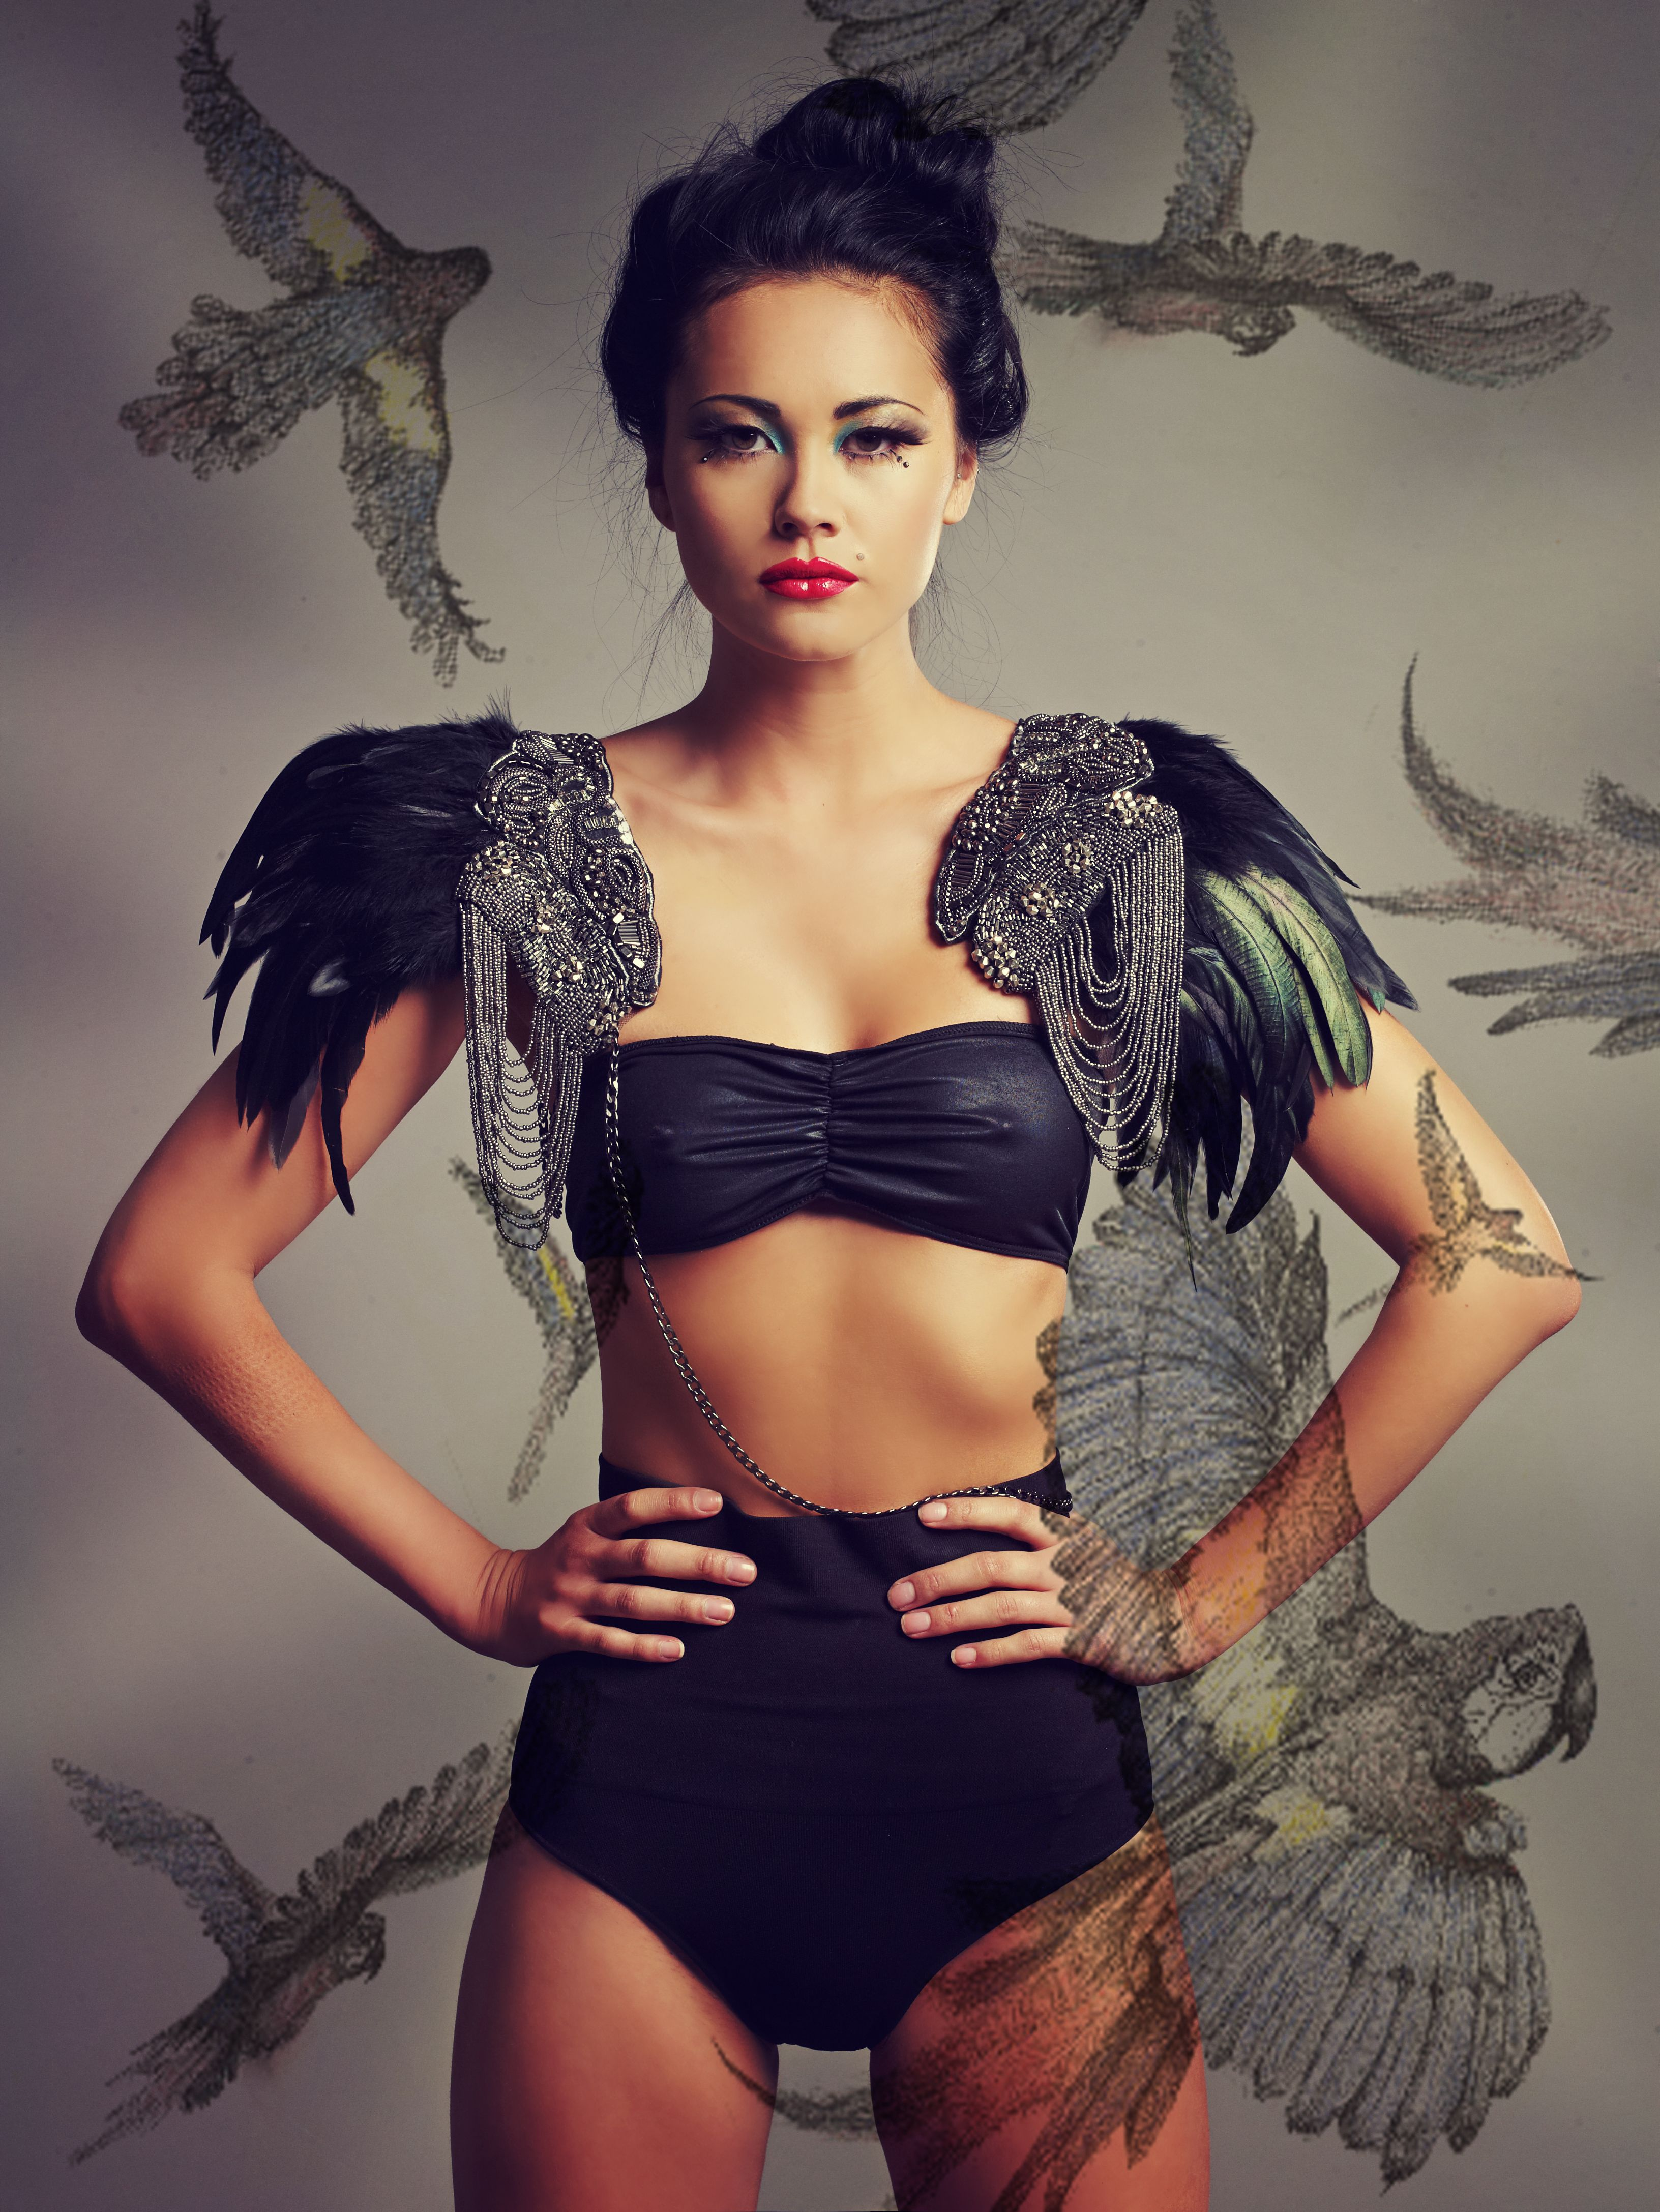 Handmade feathered shoulder piece by Boutique Alter Ego